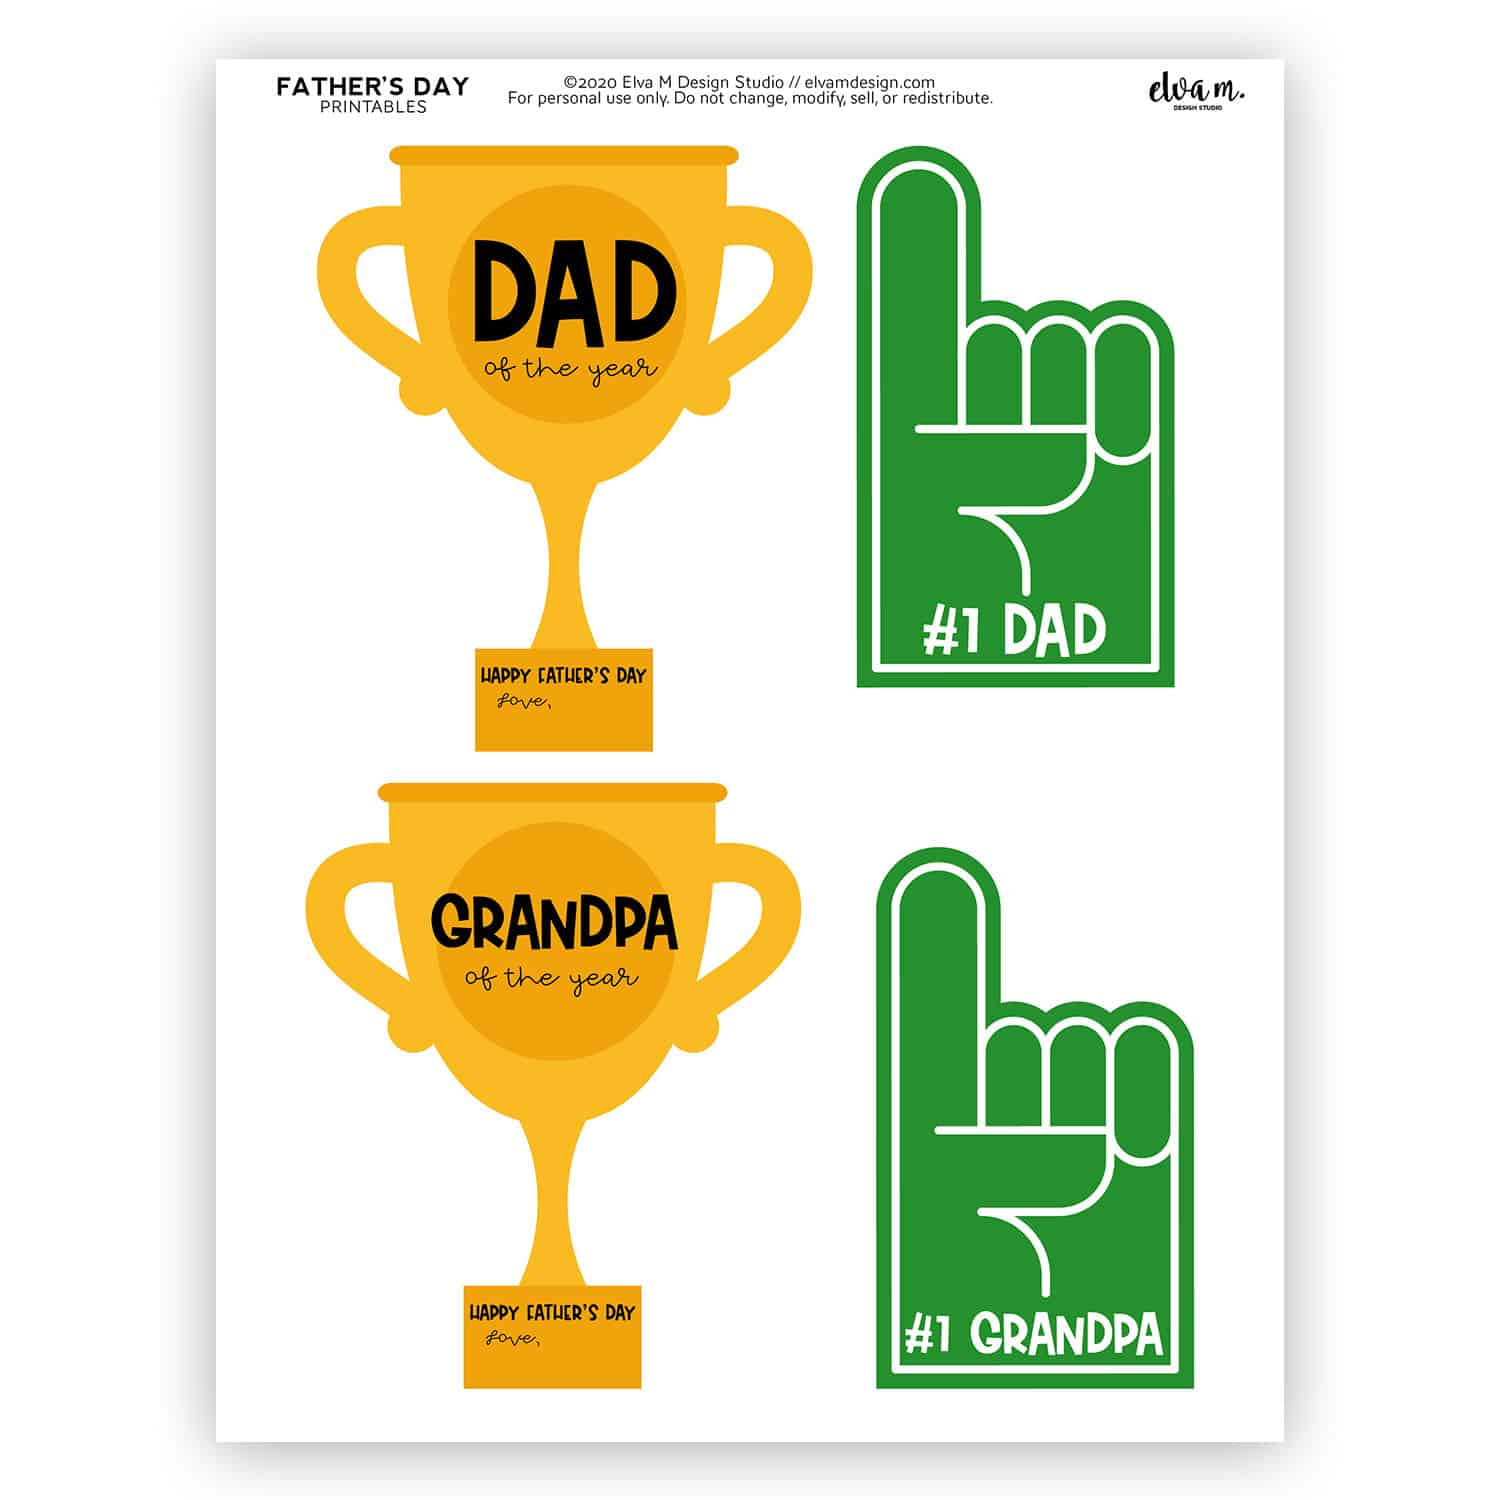 Dad of the Year Father's Day printable